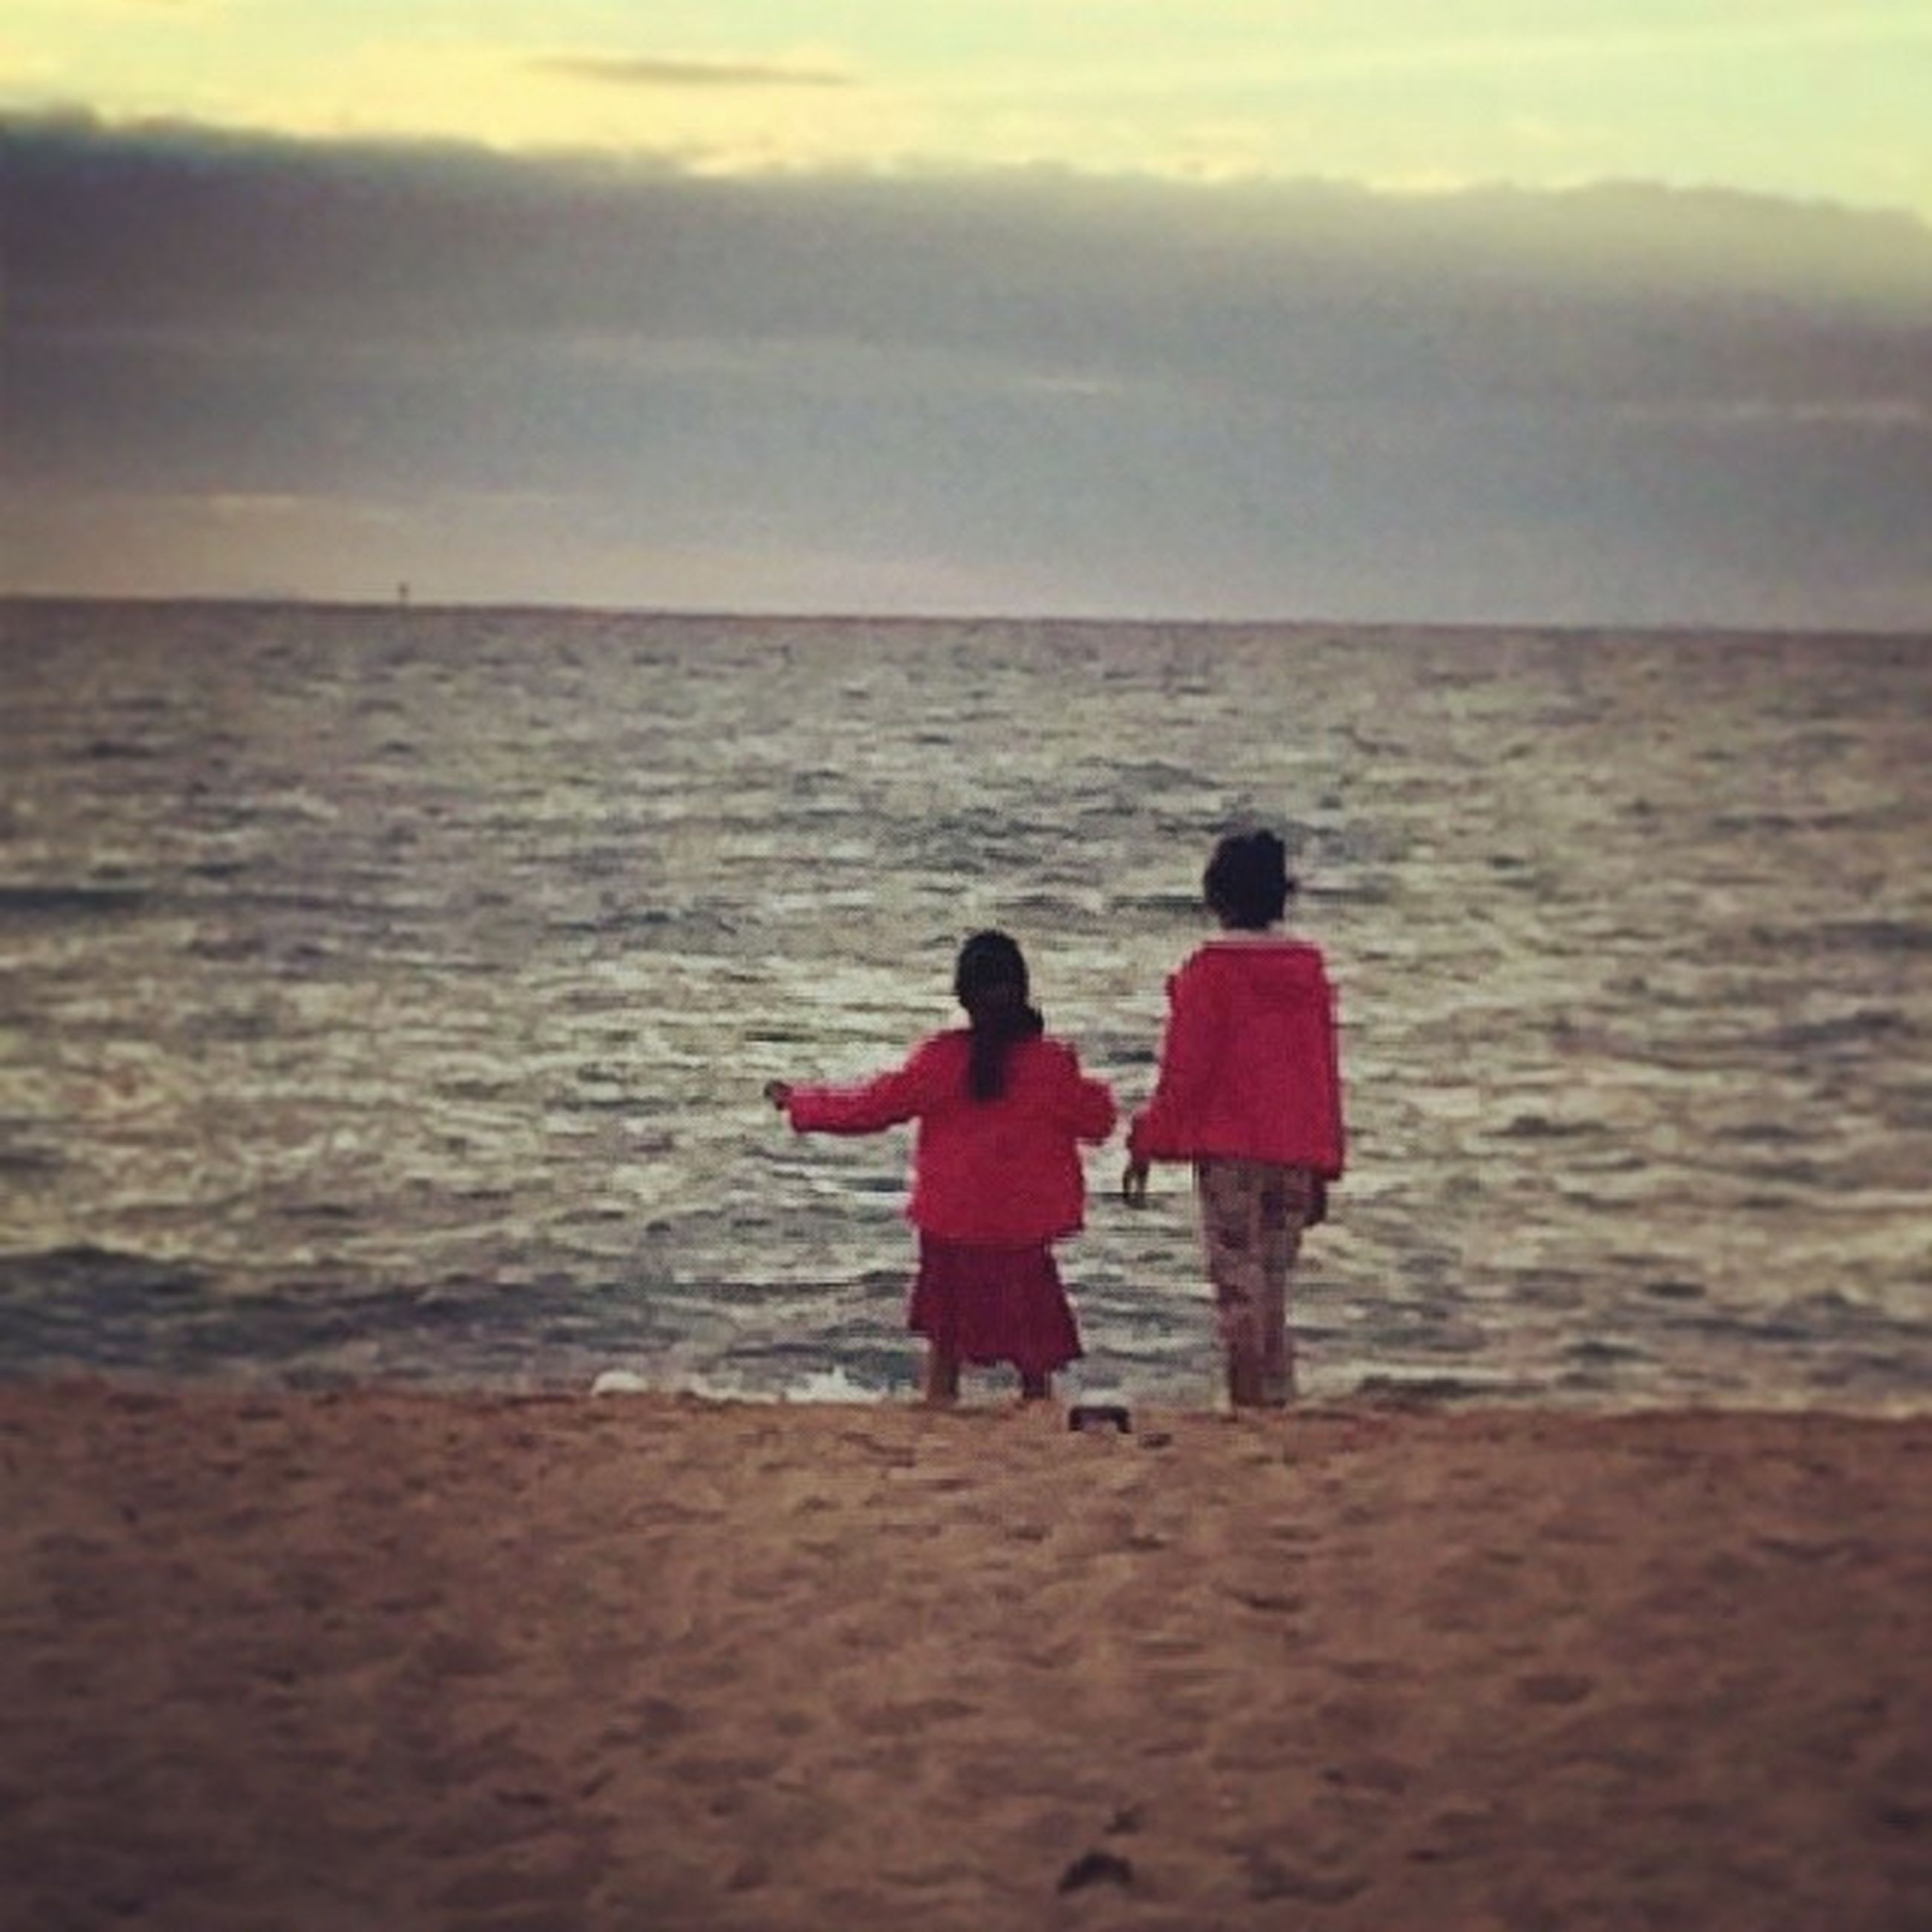 sea, water, beach, horizon over water, togetherness, leisure activity, lifestyles, rear view, shore, sky, childhood, full length, bonding, love, boys, vacations, sand, person